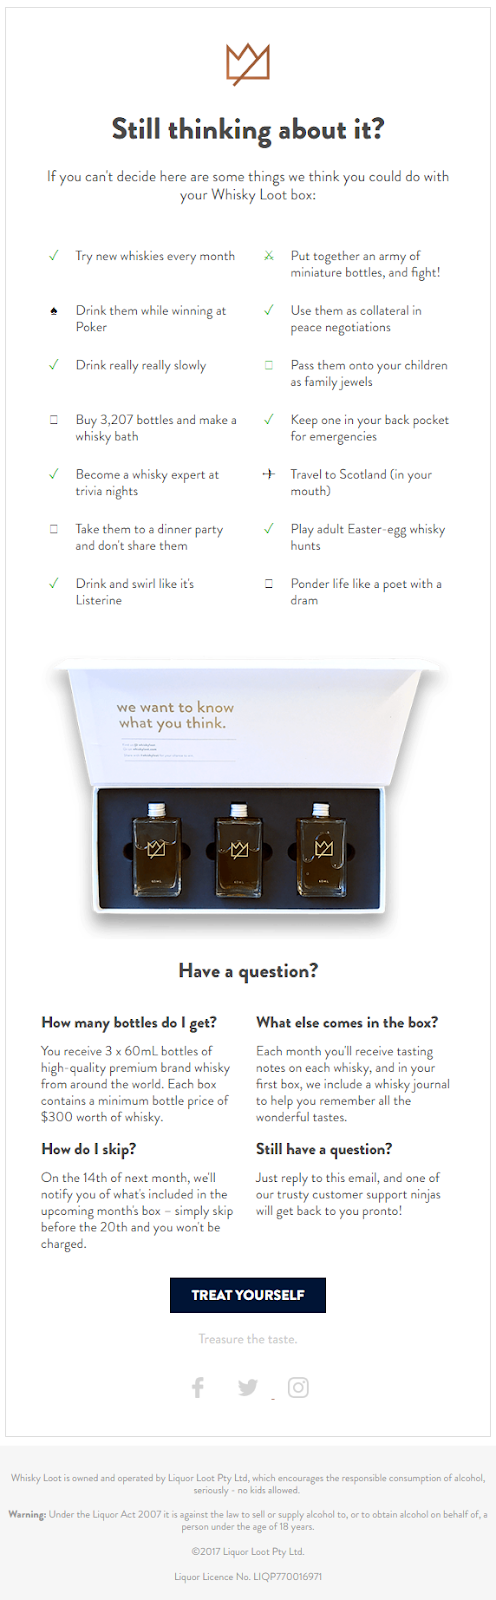 Whiskey loot welcome email